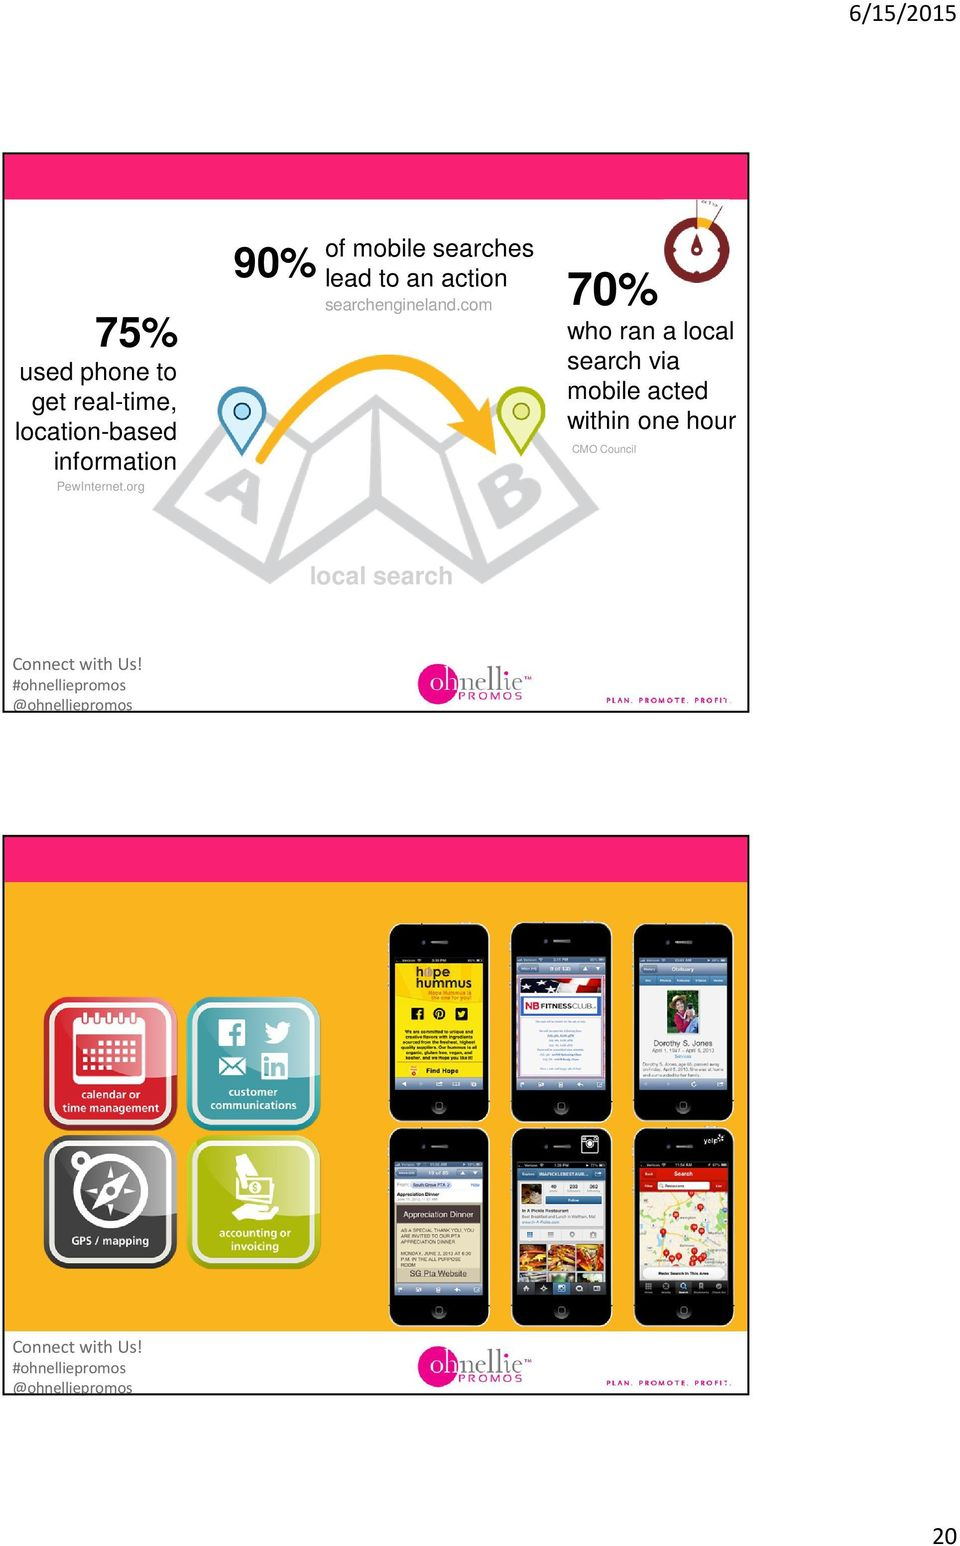 com 70% who ran a local search via mobile acted within one hour CMO Council local